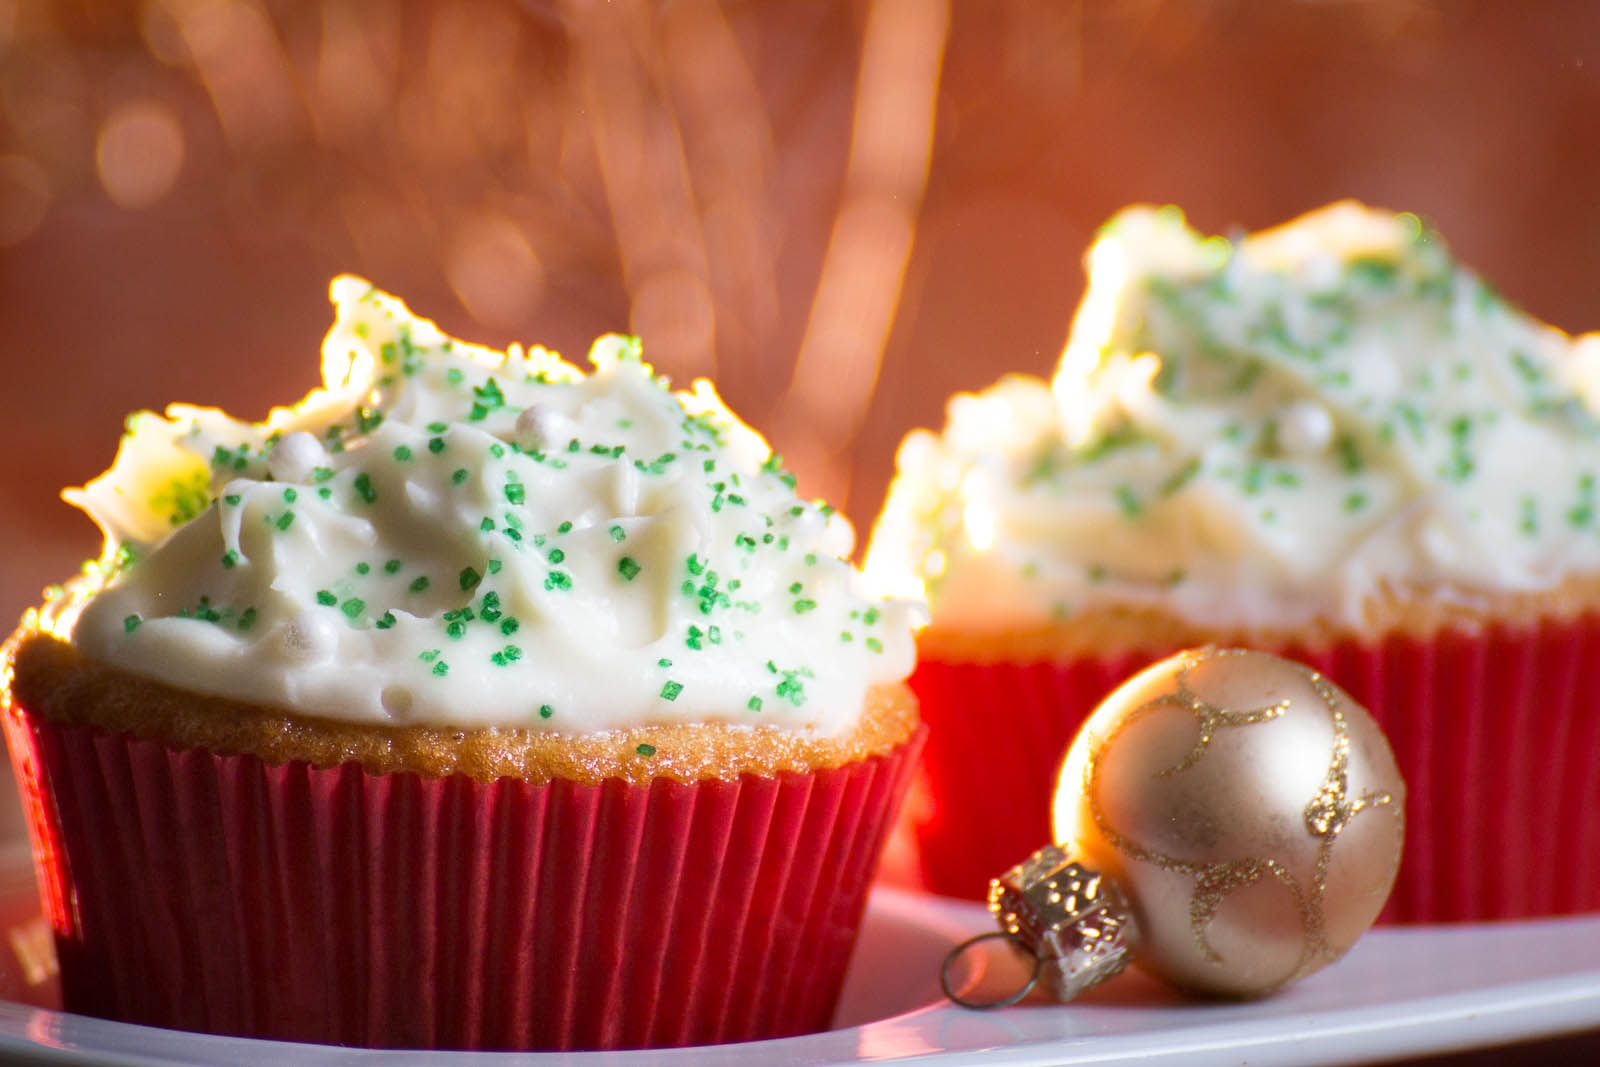 Ginger Cupcakes with Chai Cream Filling